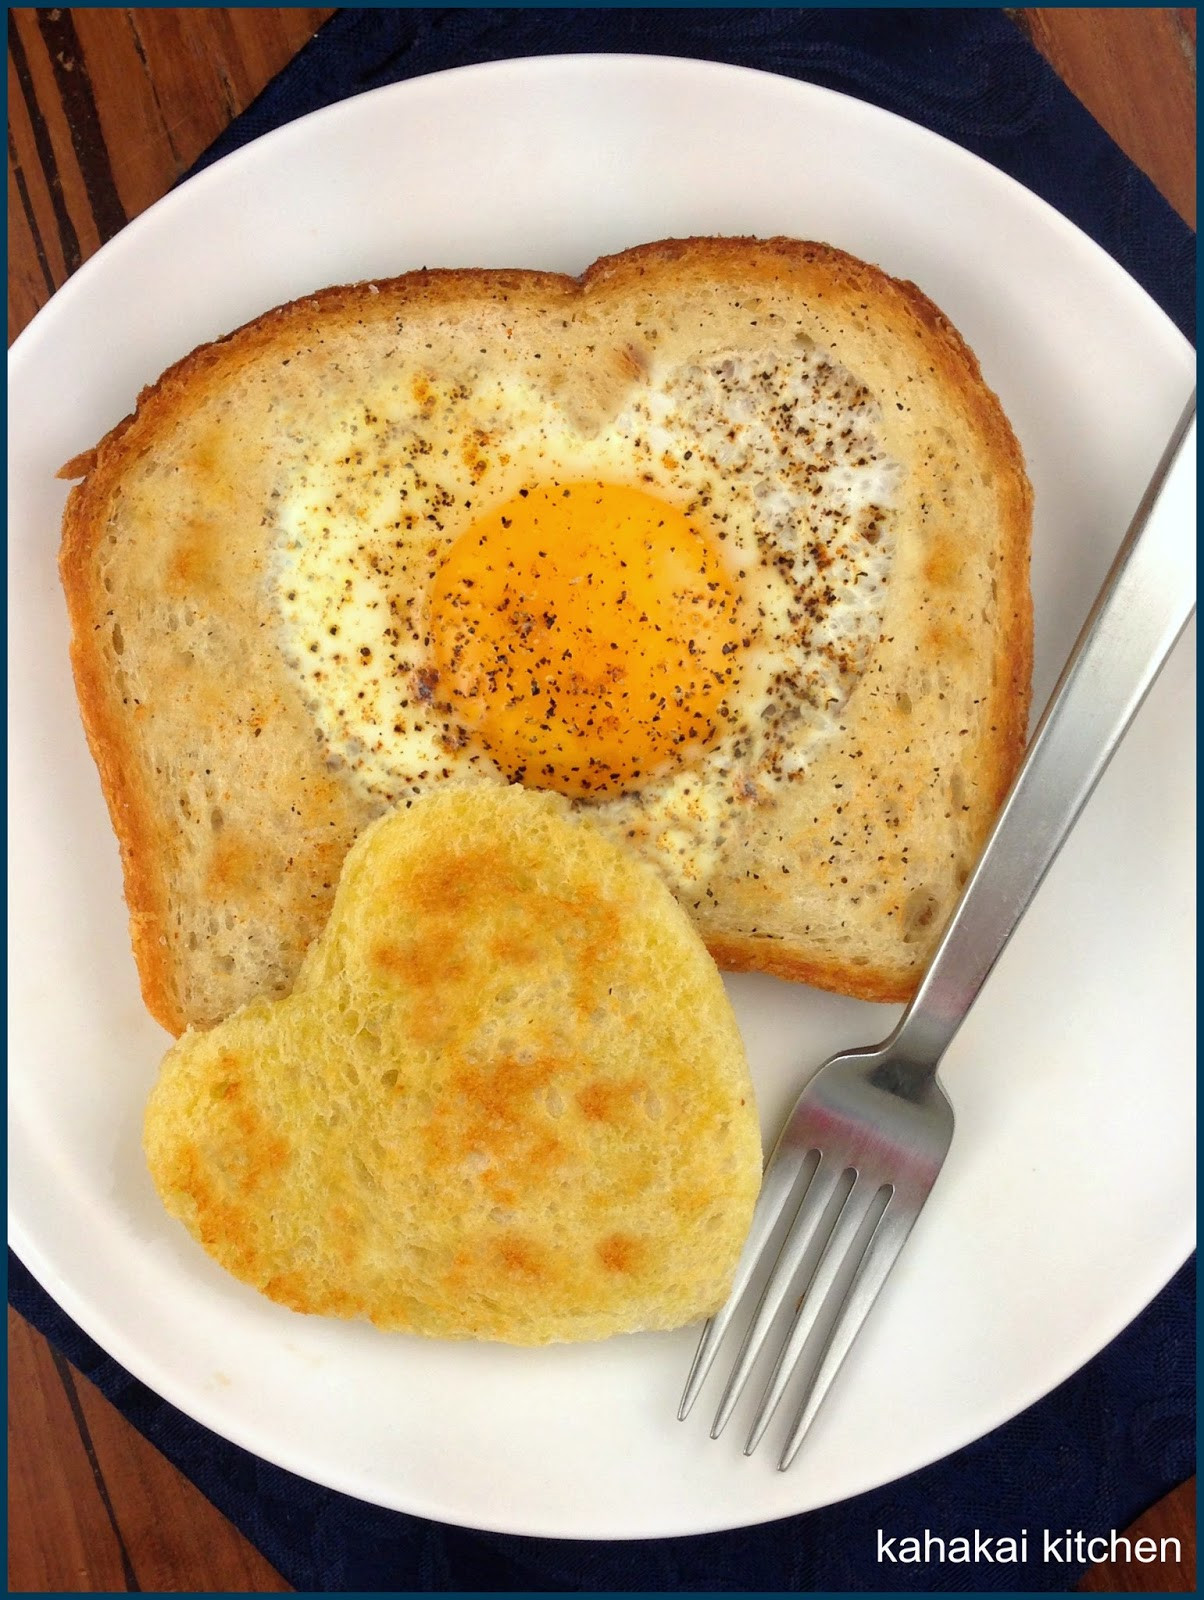 Egg In Bread  Kahakai Kitchen The Book Tour Stops Here A Review